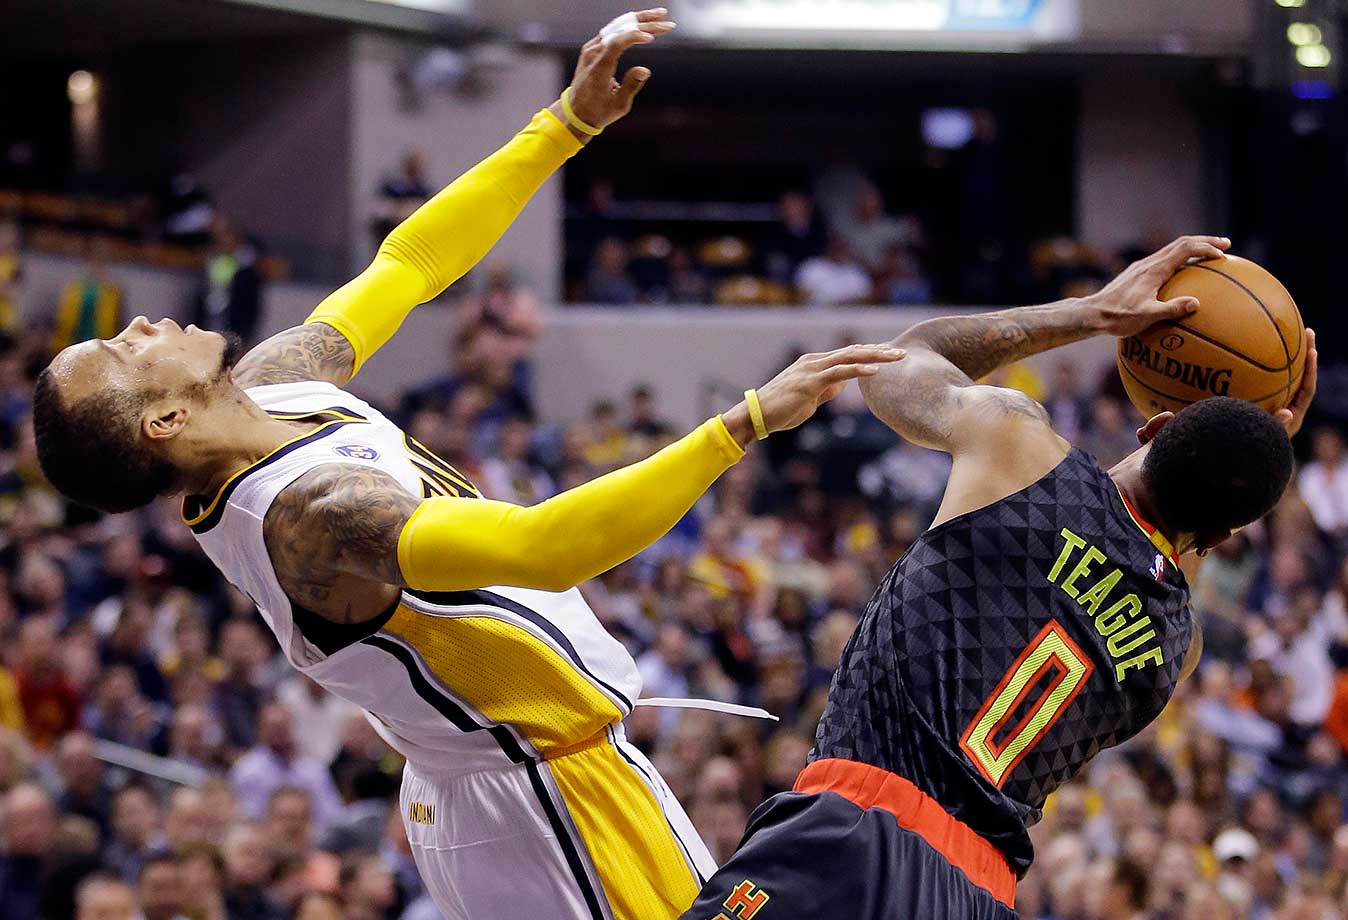 Atlanta Hawks' Jeff Teague is called for a charging foul against Indiana Pacers' Monta Ellis in Indianapolis. Indiana won 111-92.